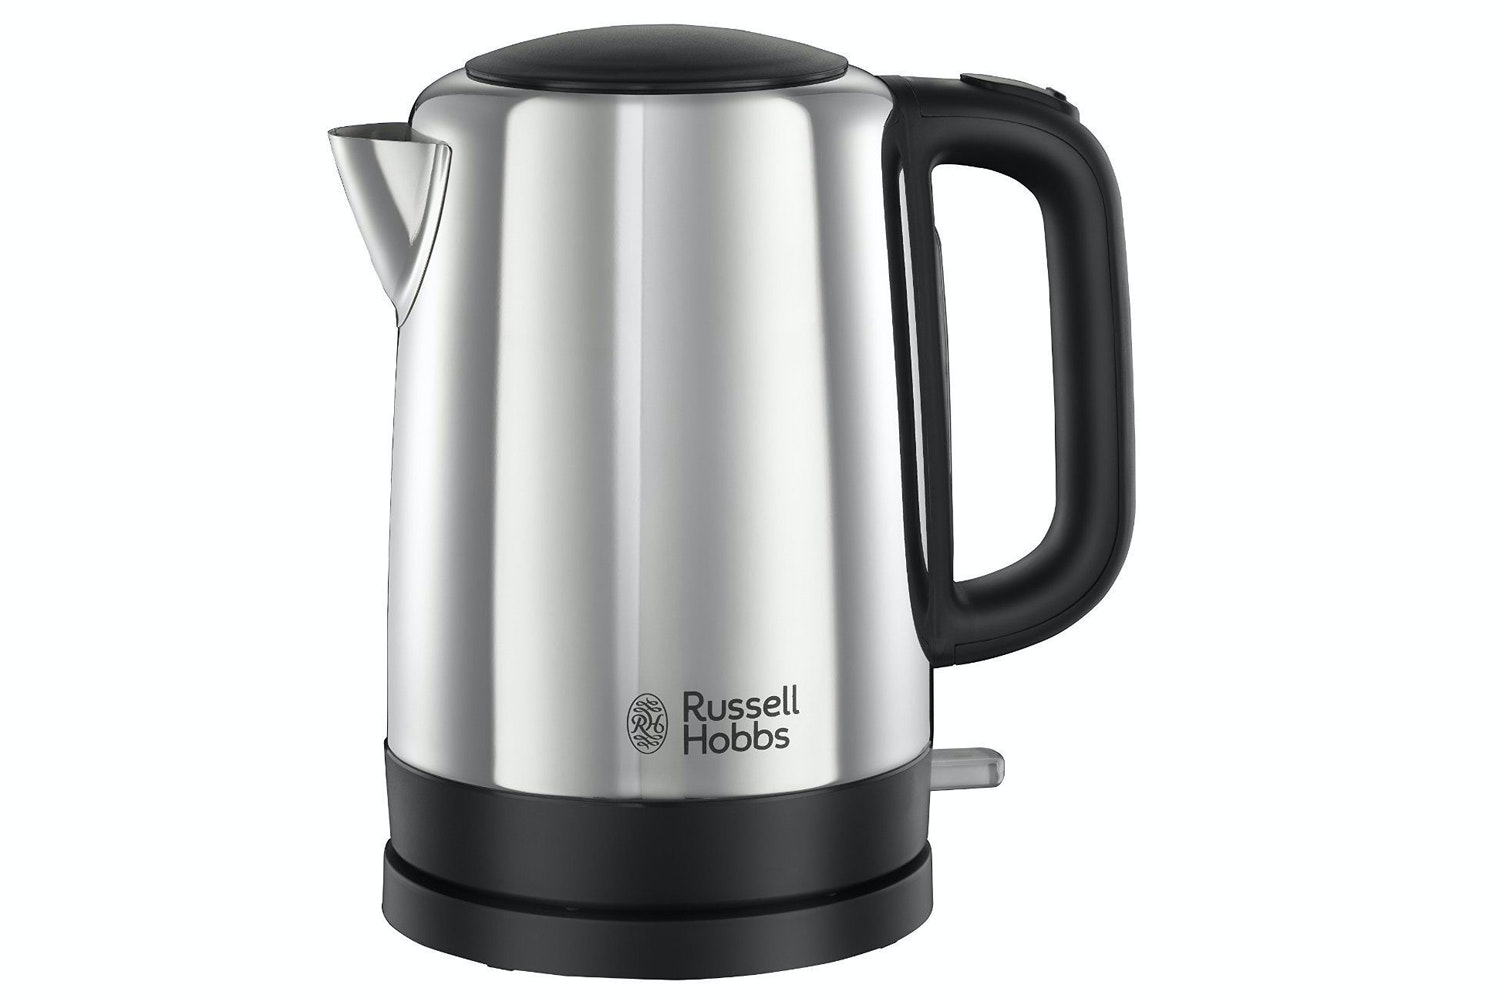 Russell Hobbs 1.7L Canterbury Kettle | 20611 | Stainless Steel